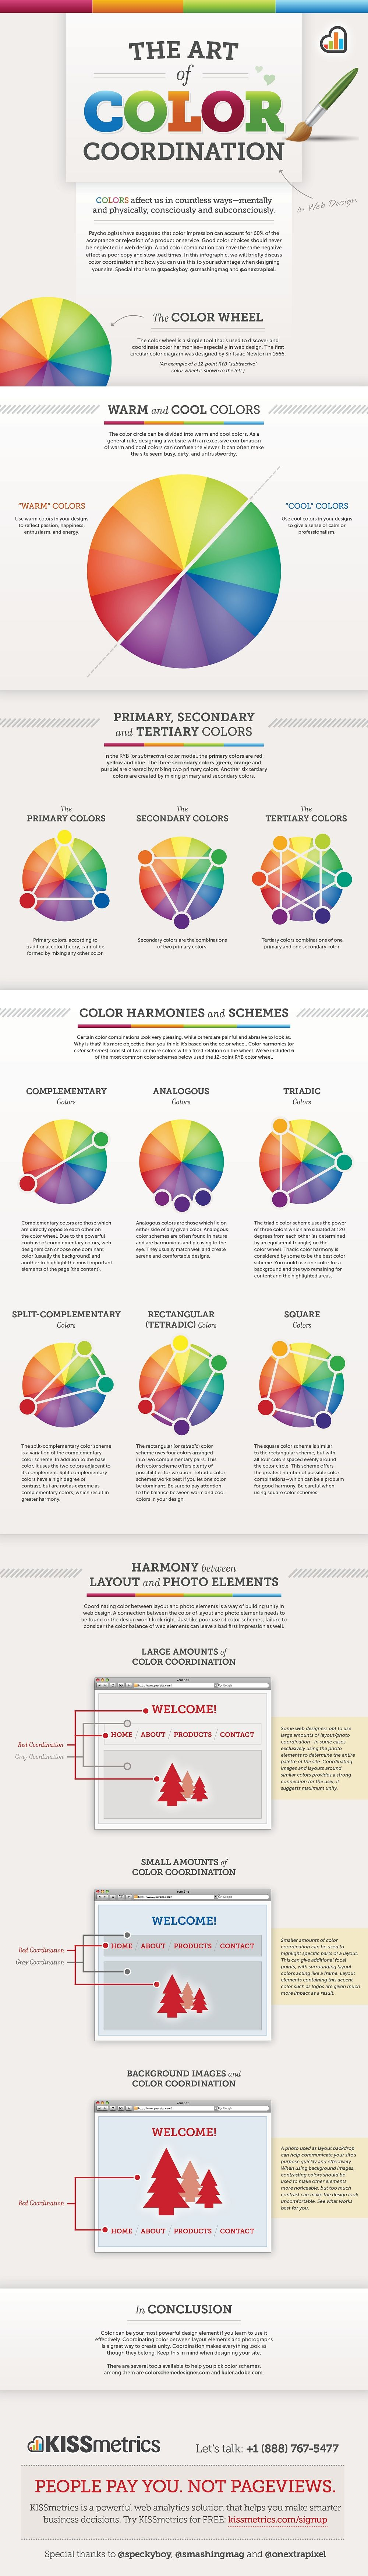 The Art of Color Coordination #infographic